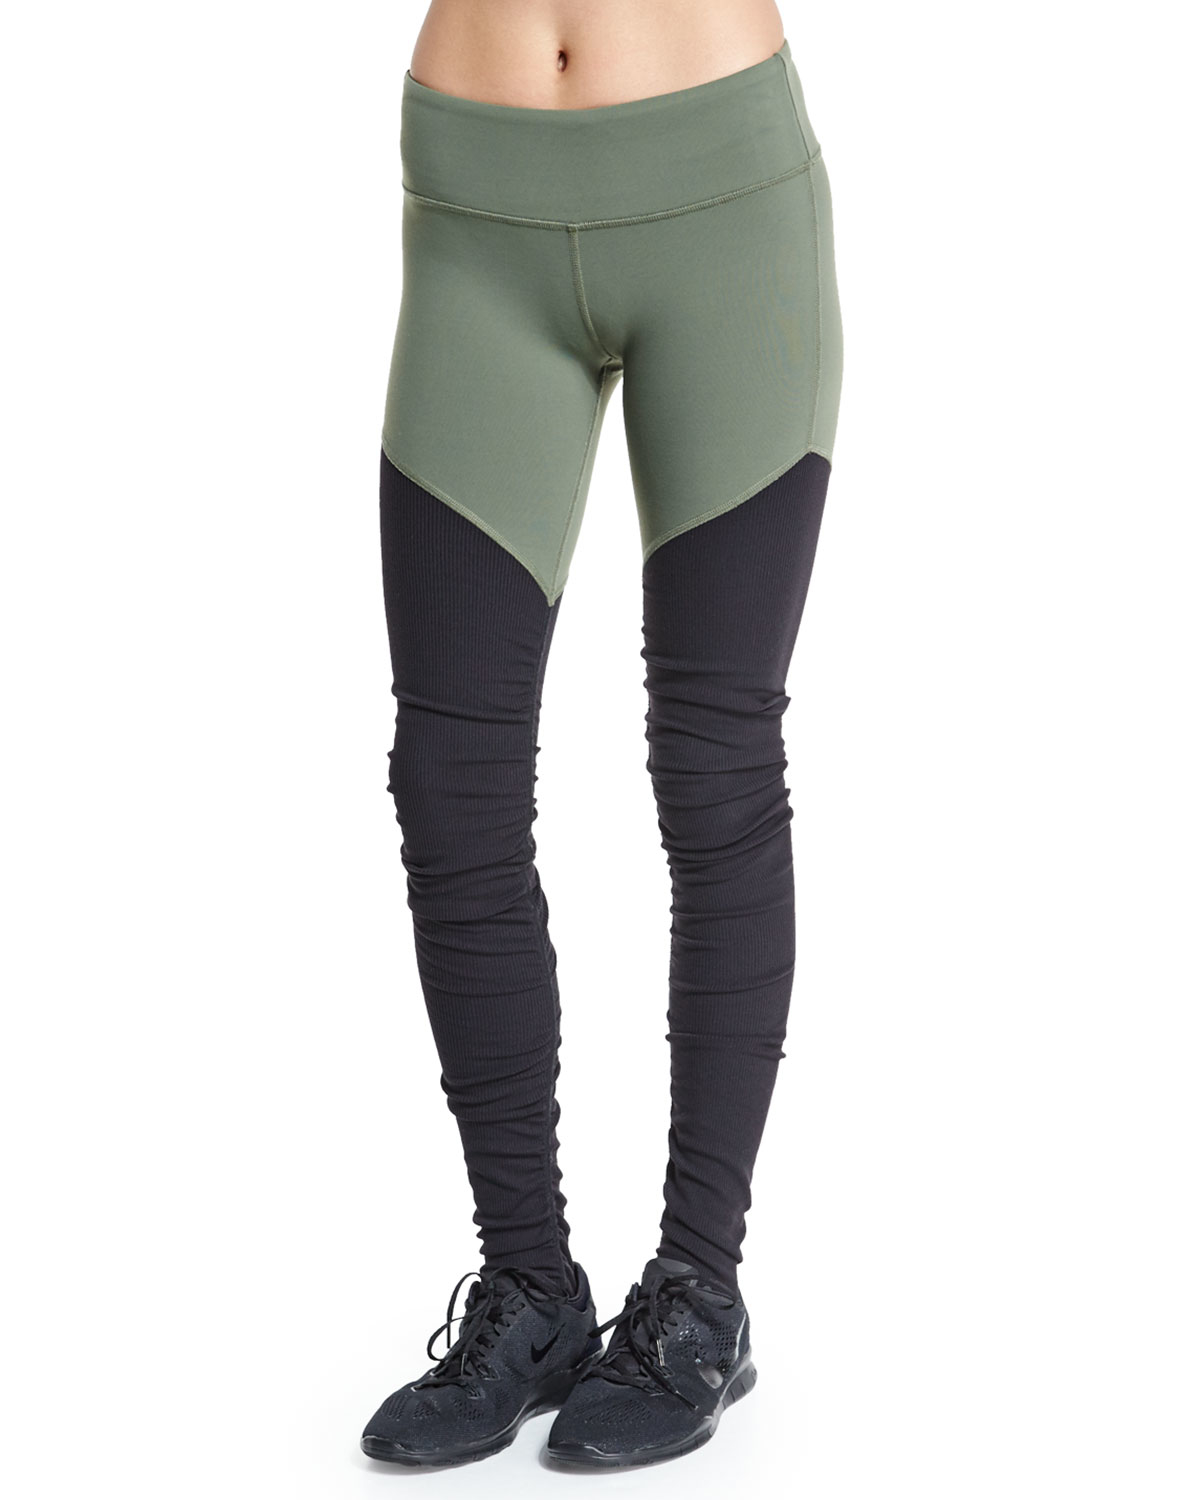 c1b6a7457f1be Alo Yoga Goddess 2 Colorblock Ribbed Sport Leggings in Green - Lyst